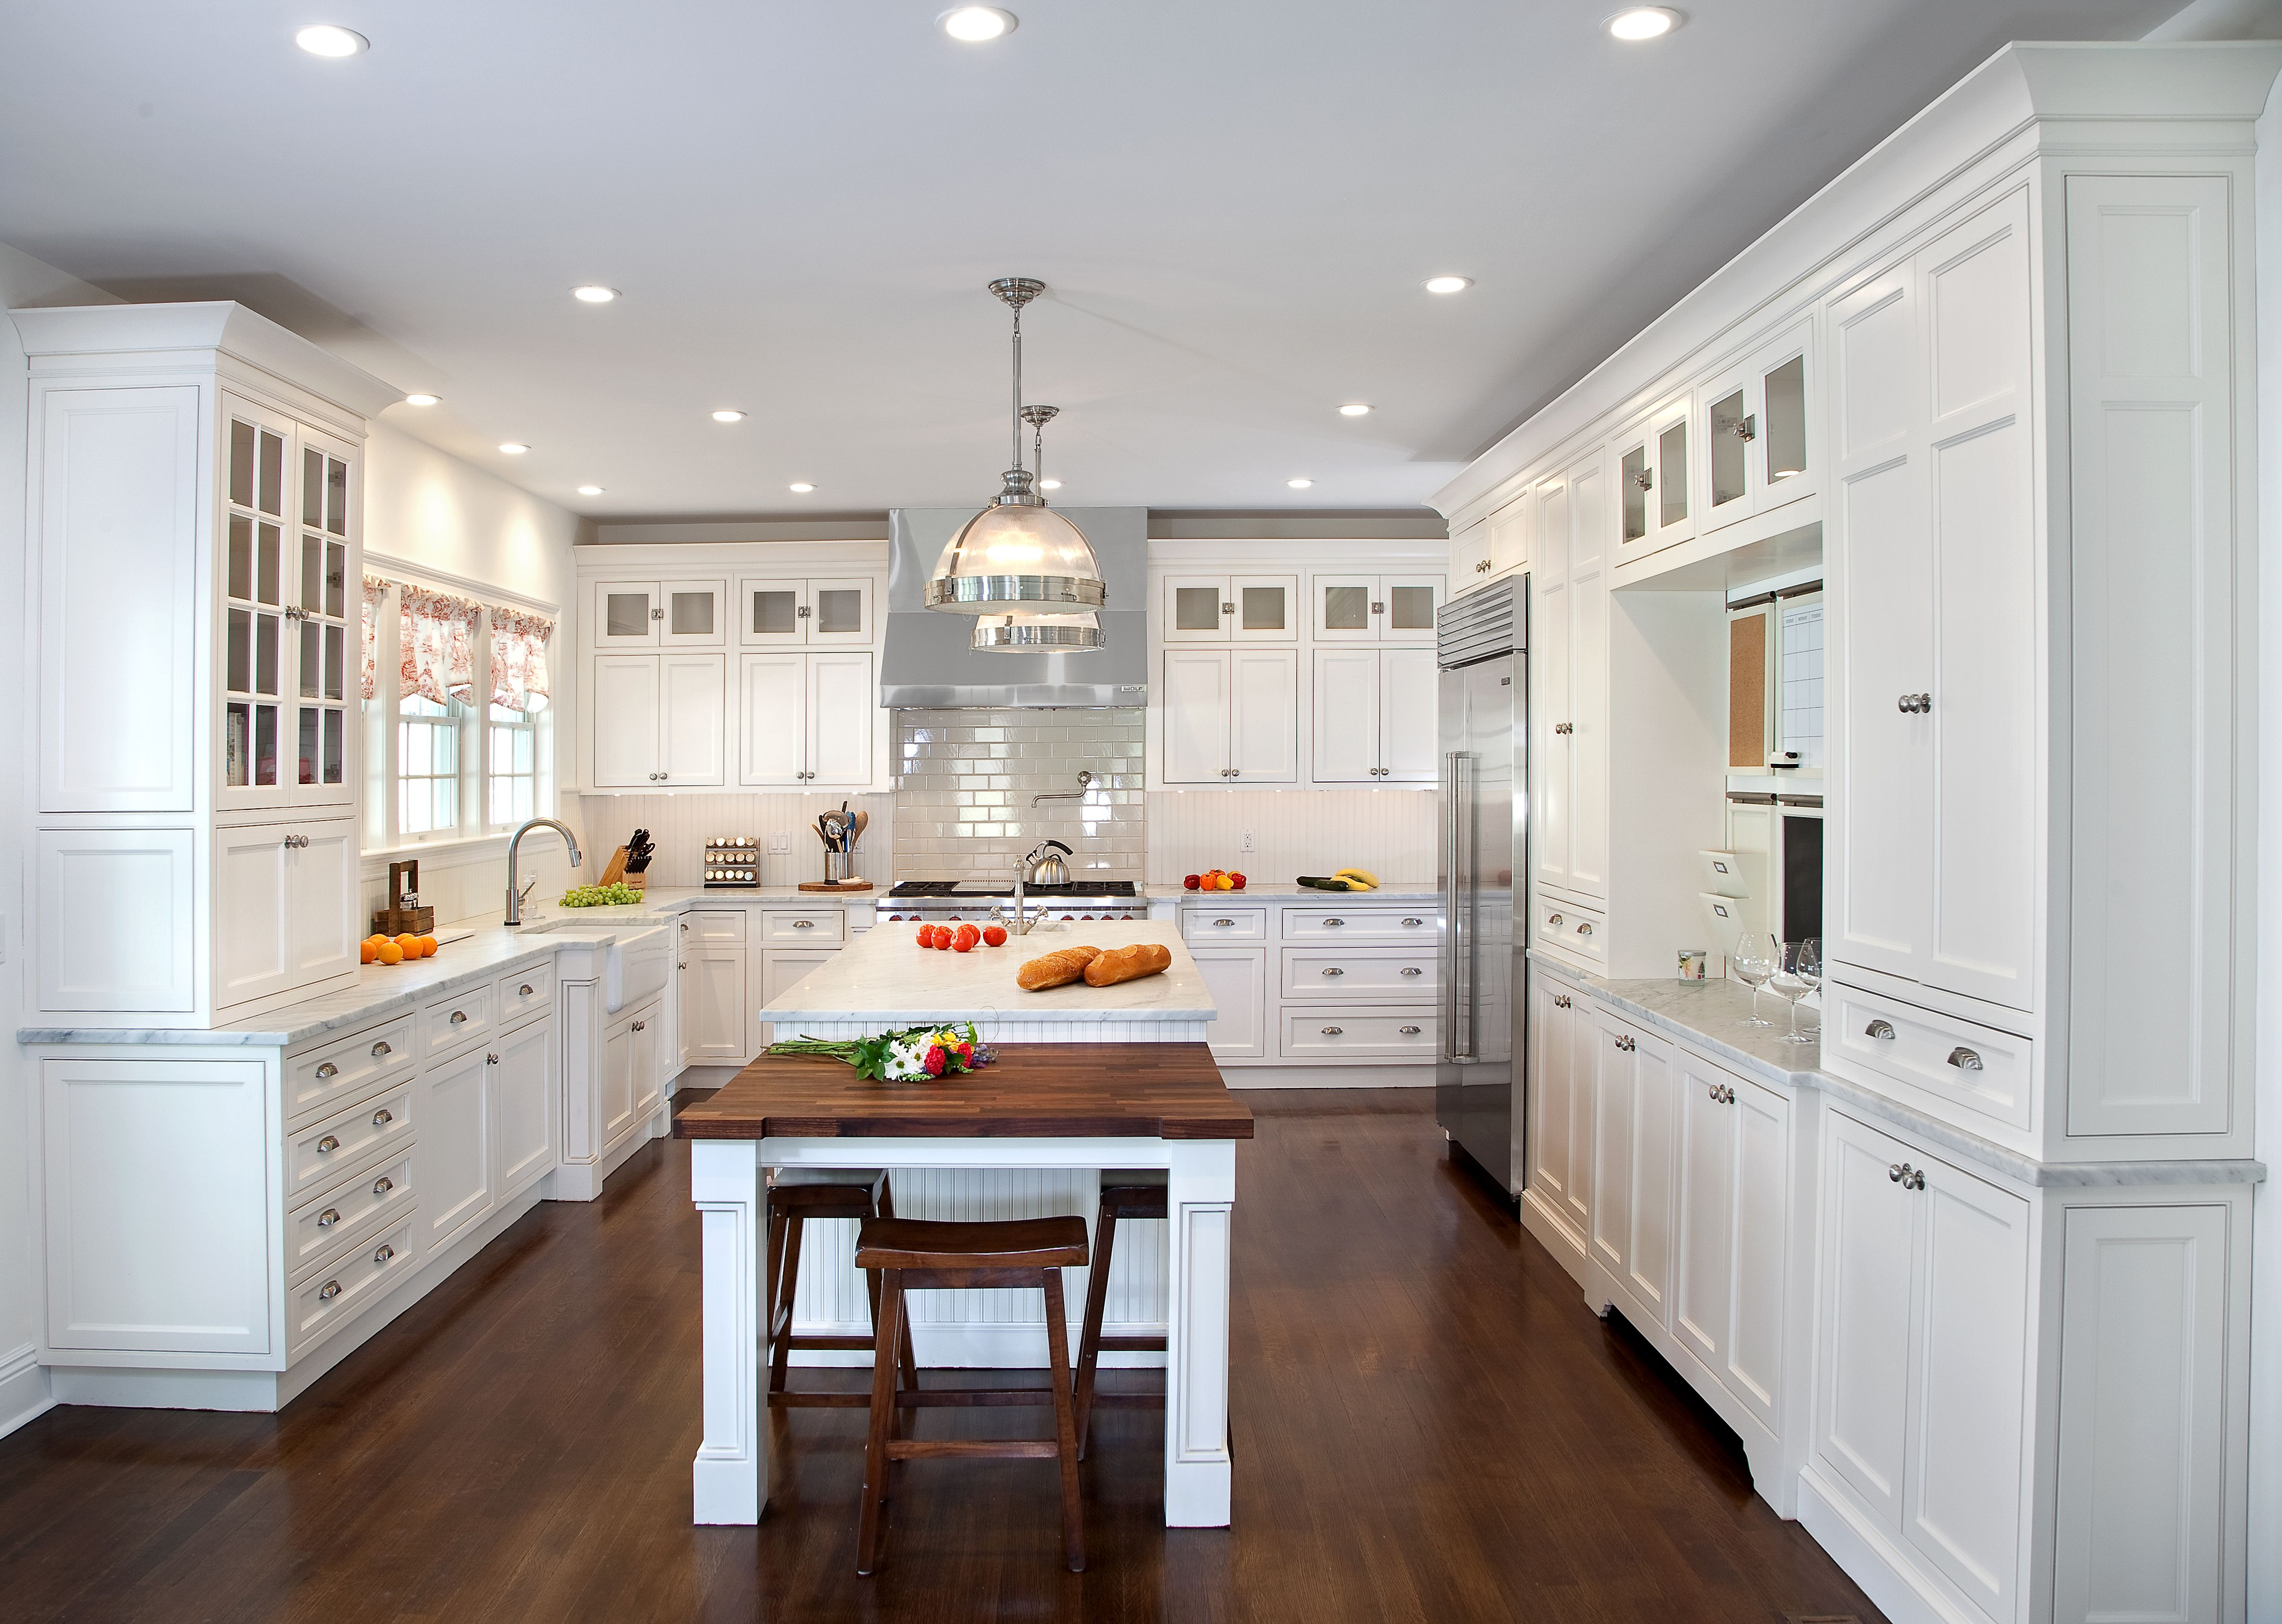 Warwick, NY kitchen by Kuche+Cucina. Modern-Traditional or like many ...